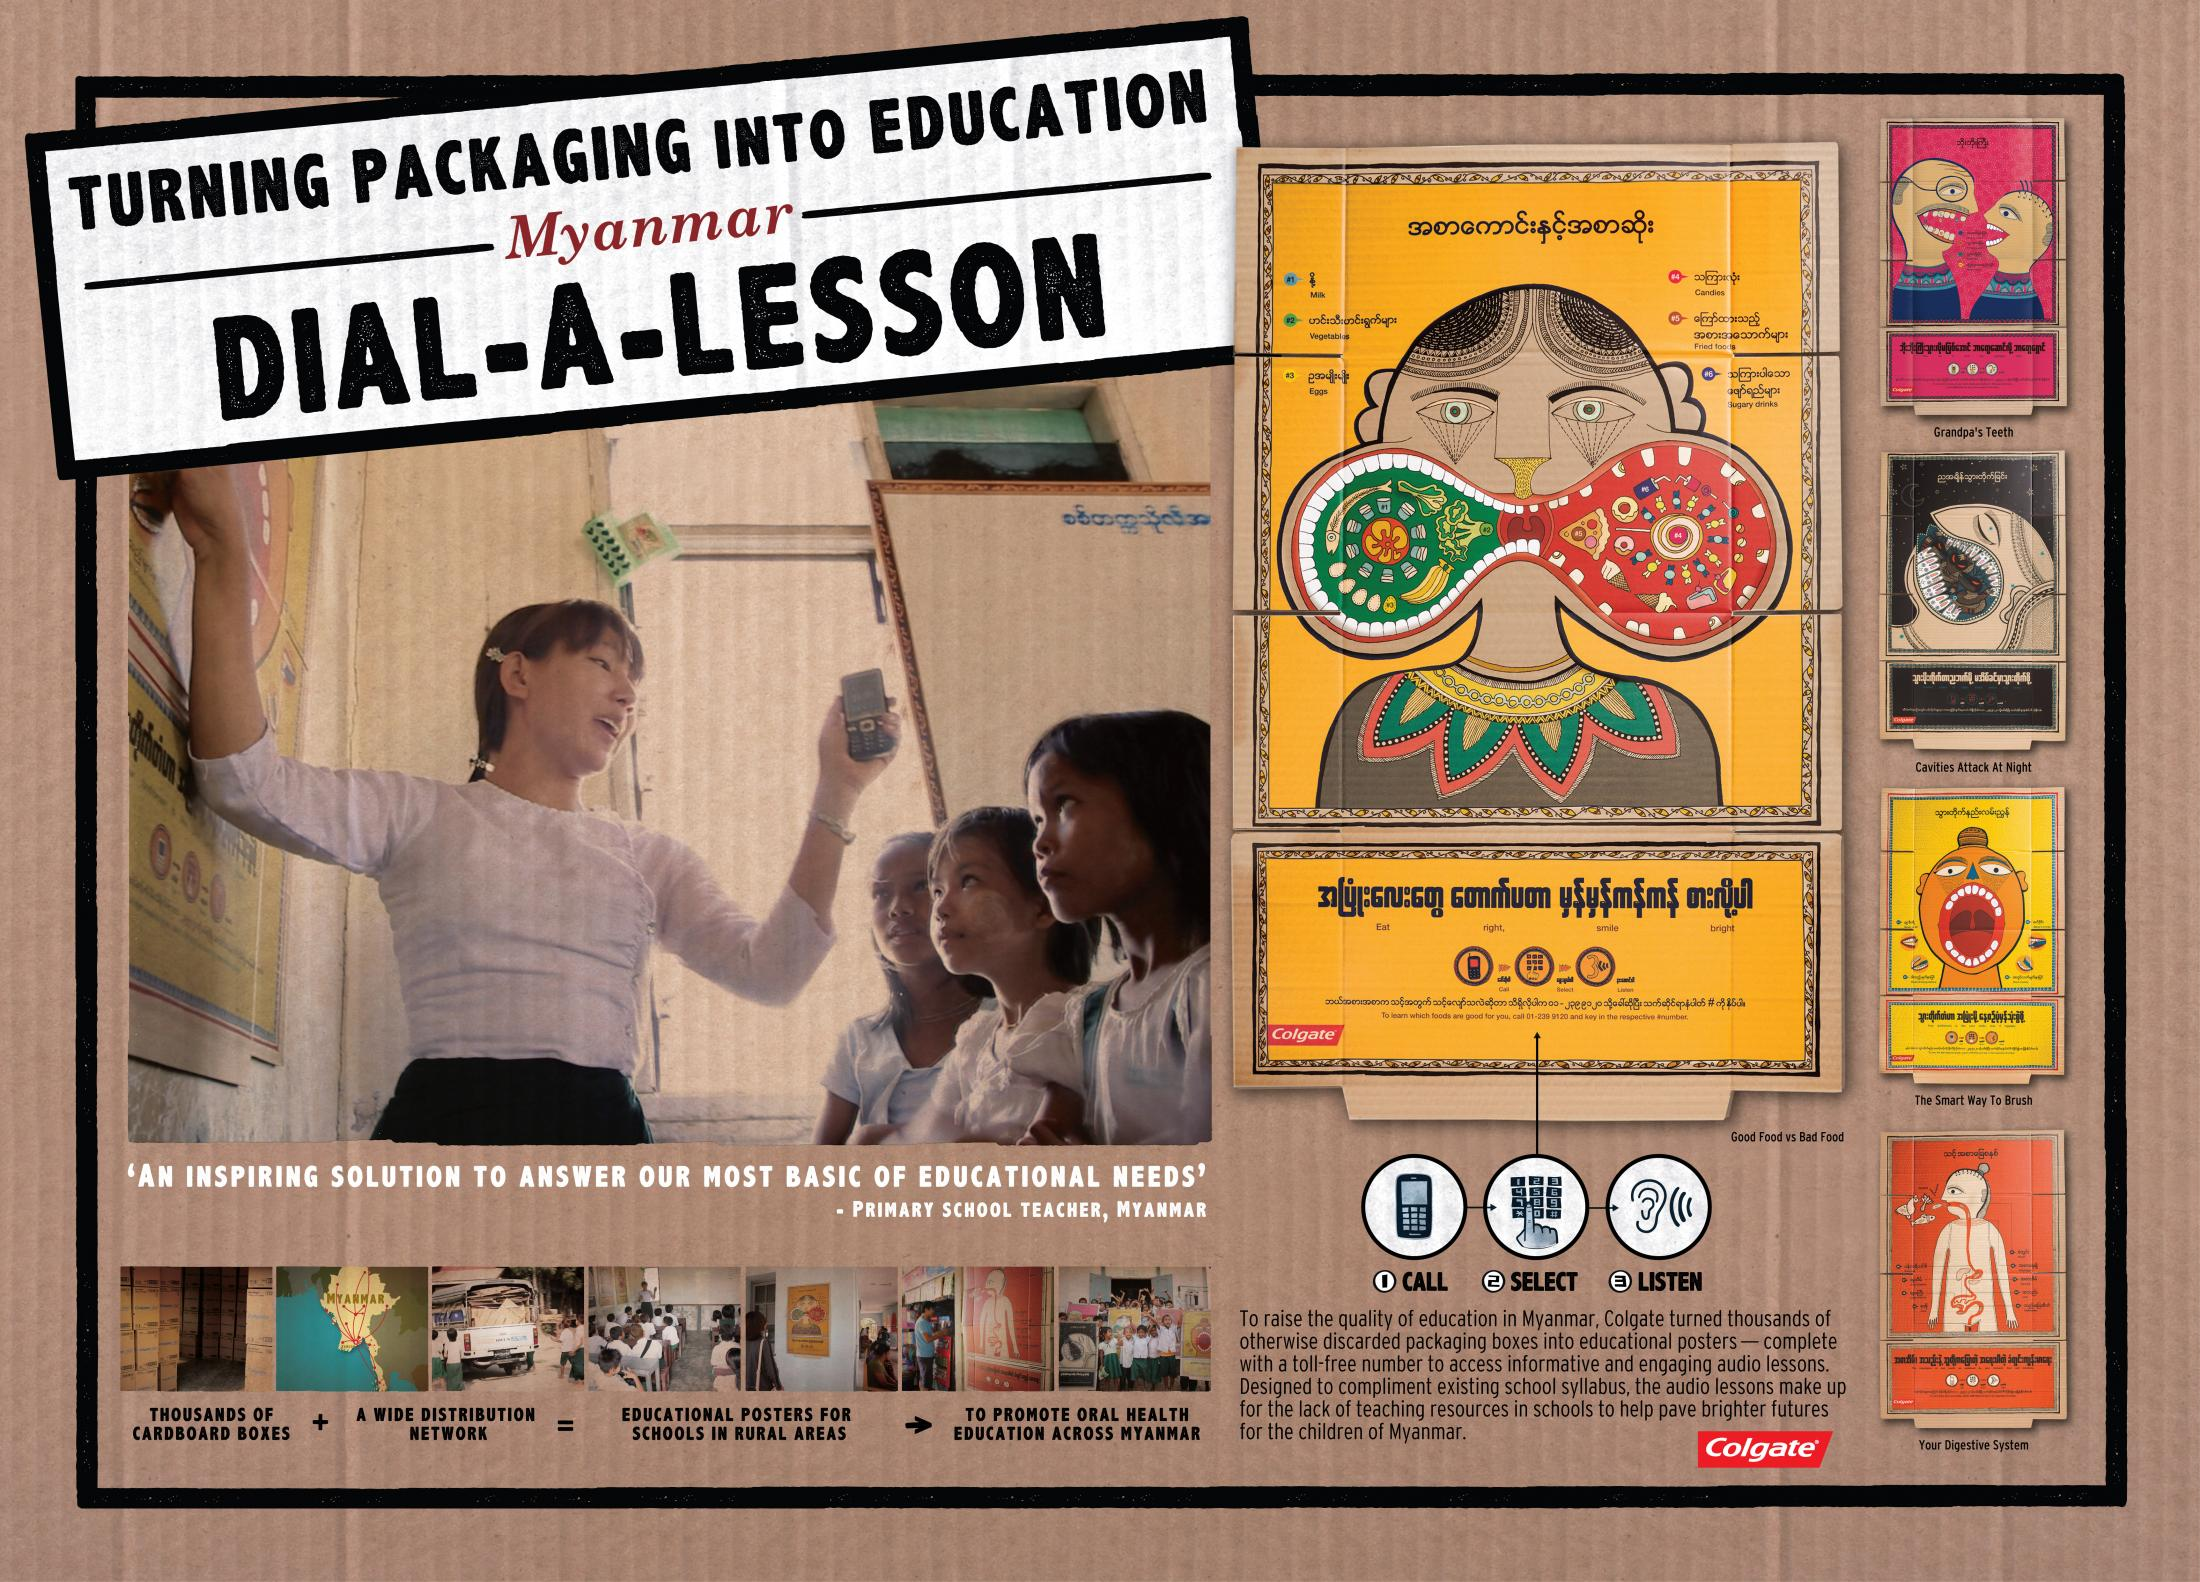 Thumbnail for Turning Packaging into Education